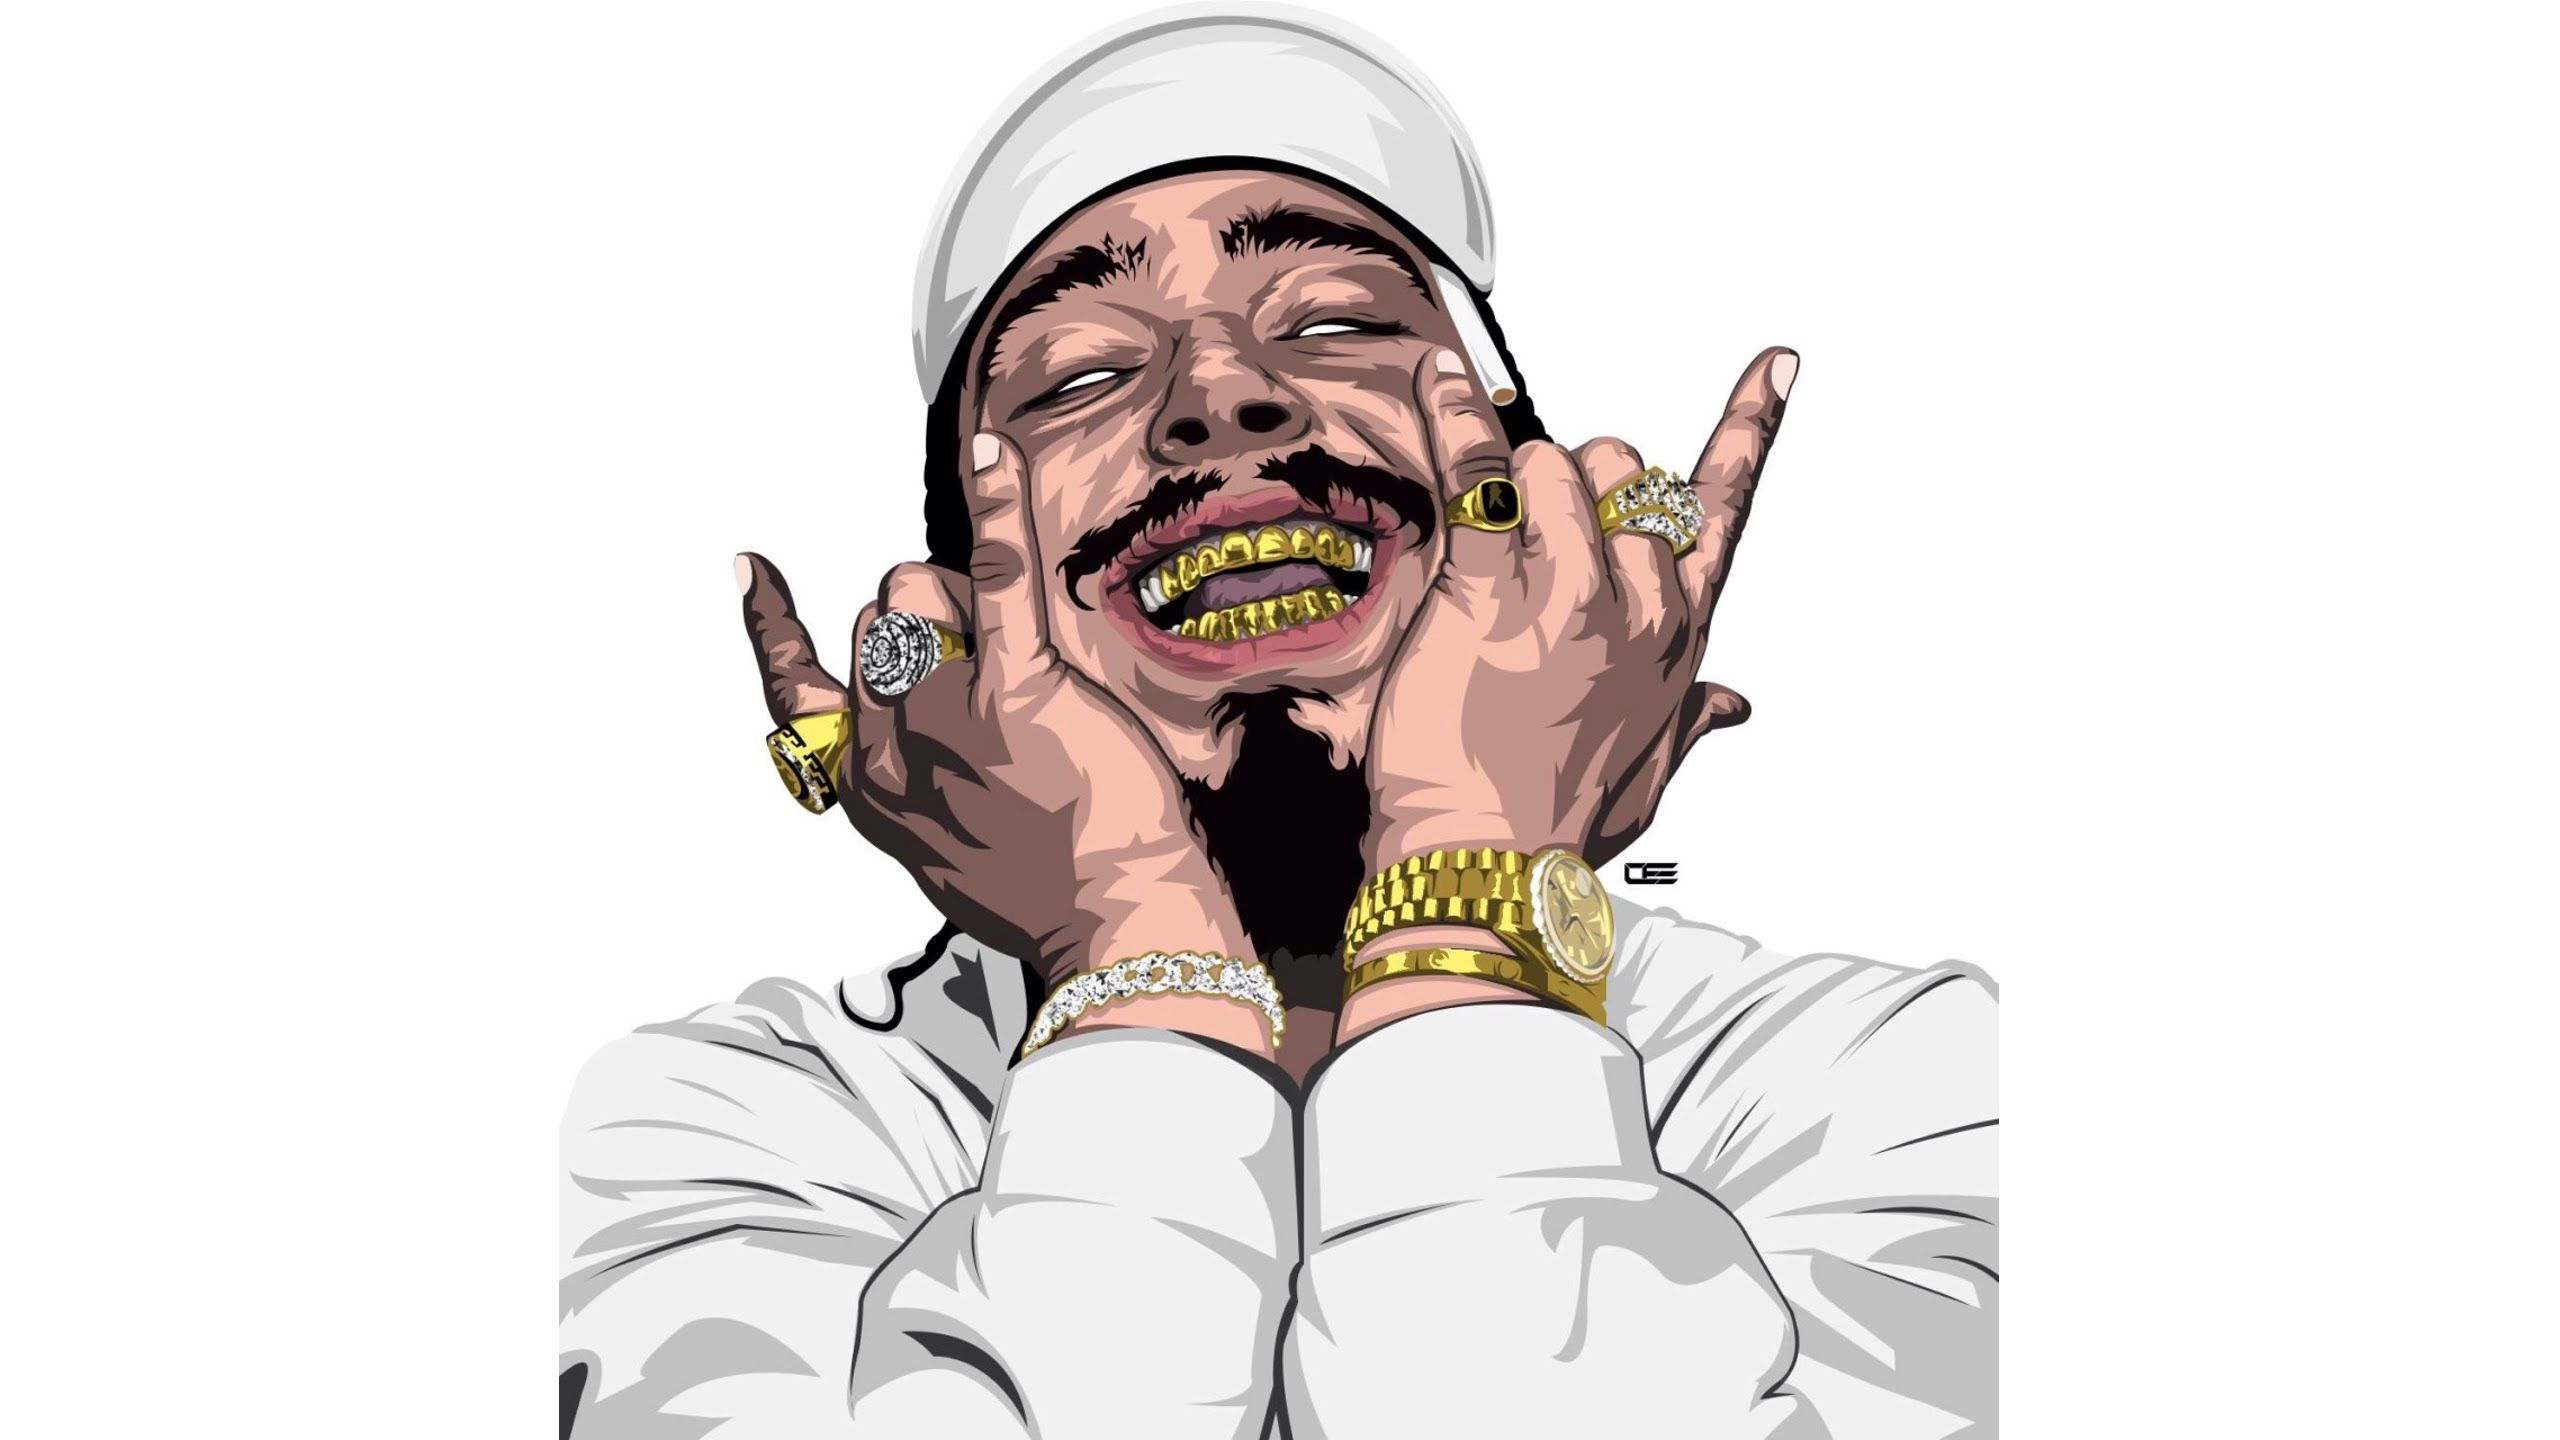 2560x1440 Post Malone Type Beat - Charge (Prod. By KVRBE) - YouTube